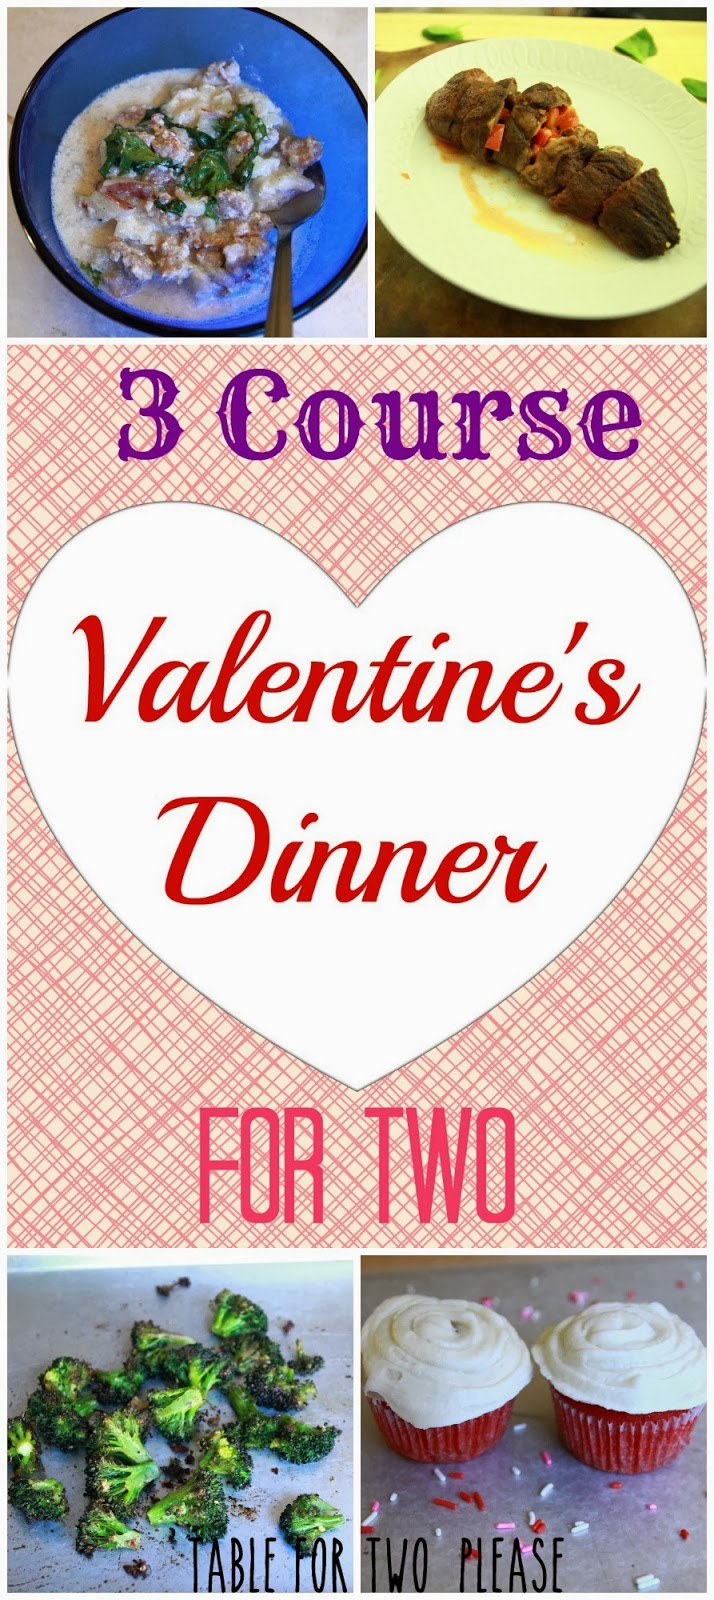 3 Course Valentine's Dinner For Two | Table for Two, please?